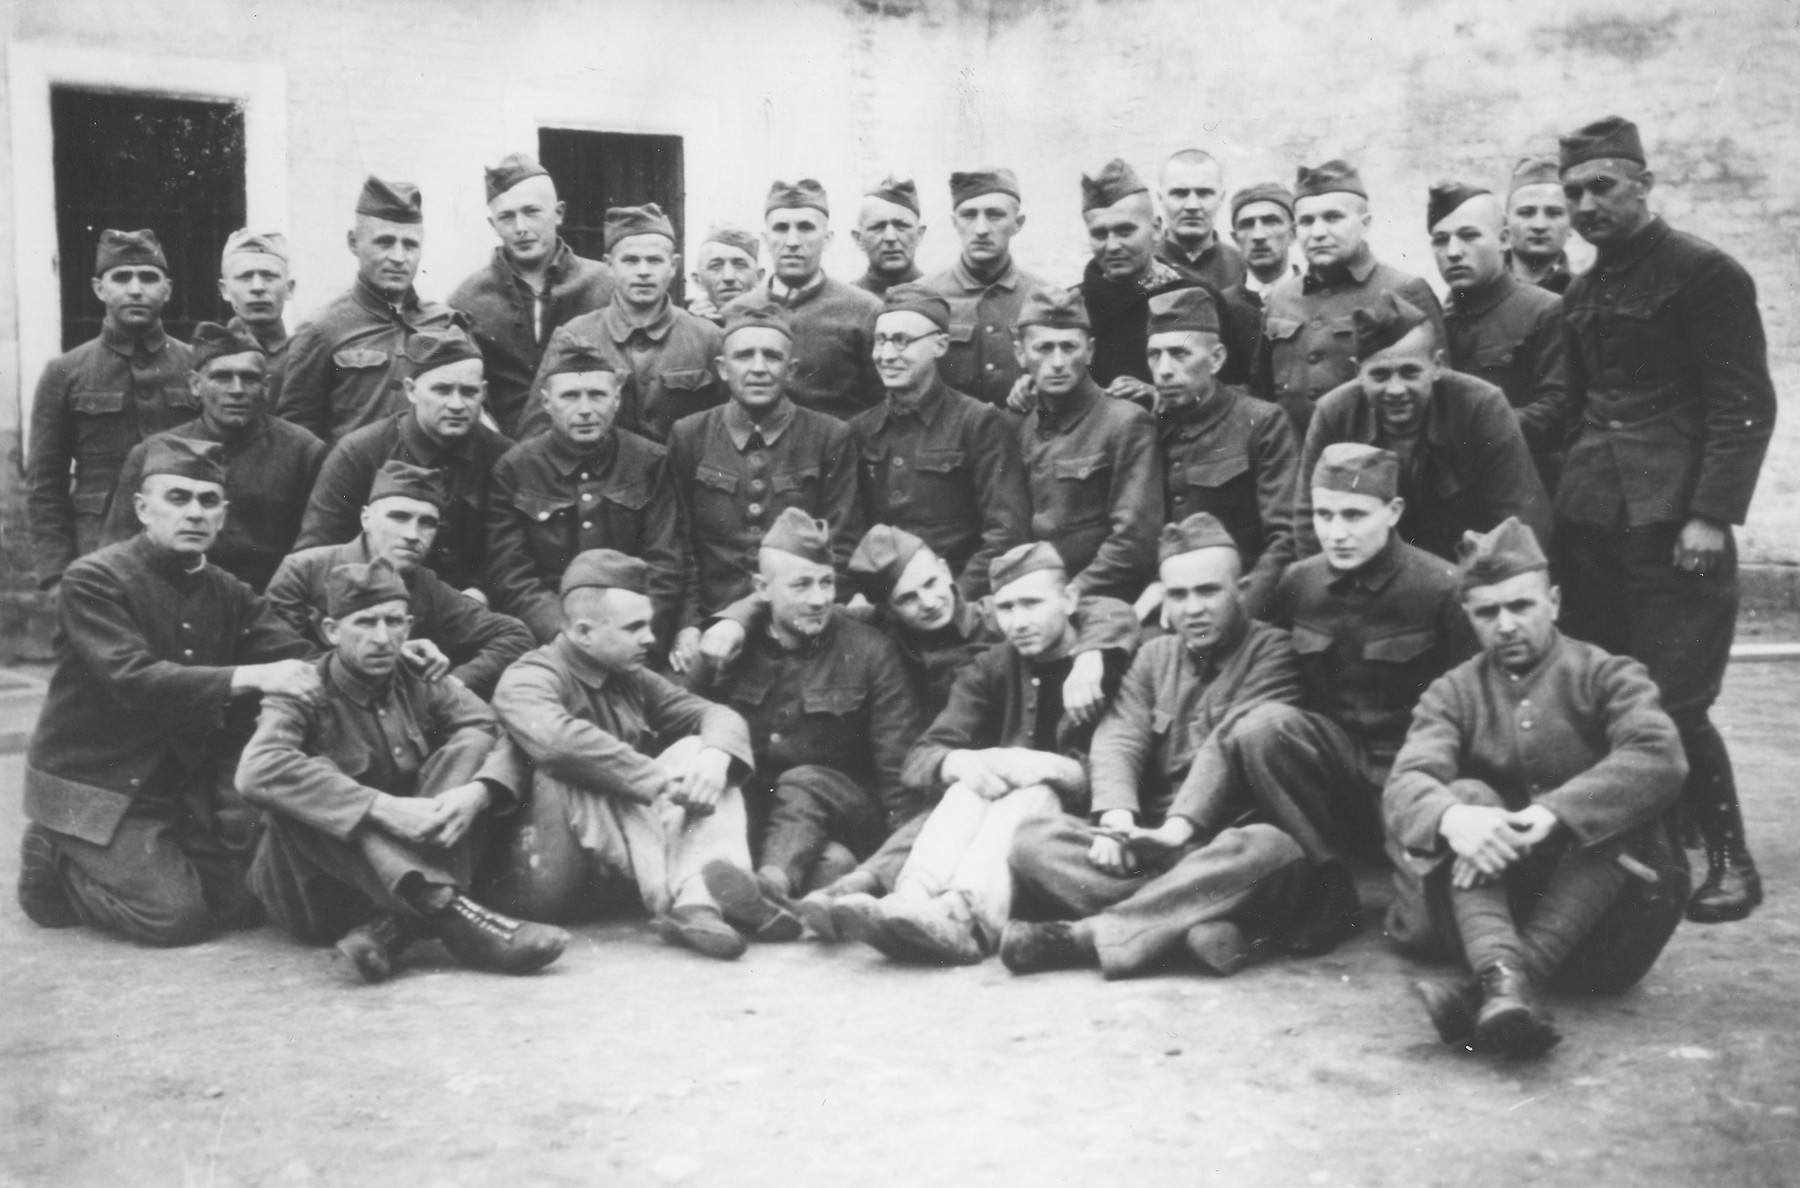 Group portrait of Czech political prisoners who shared a cell bloc in Theresienstadt.  Oskar Bartolsic is pictured in the front row, second from the left.